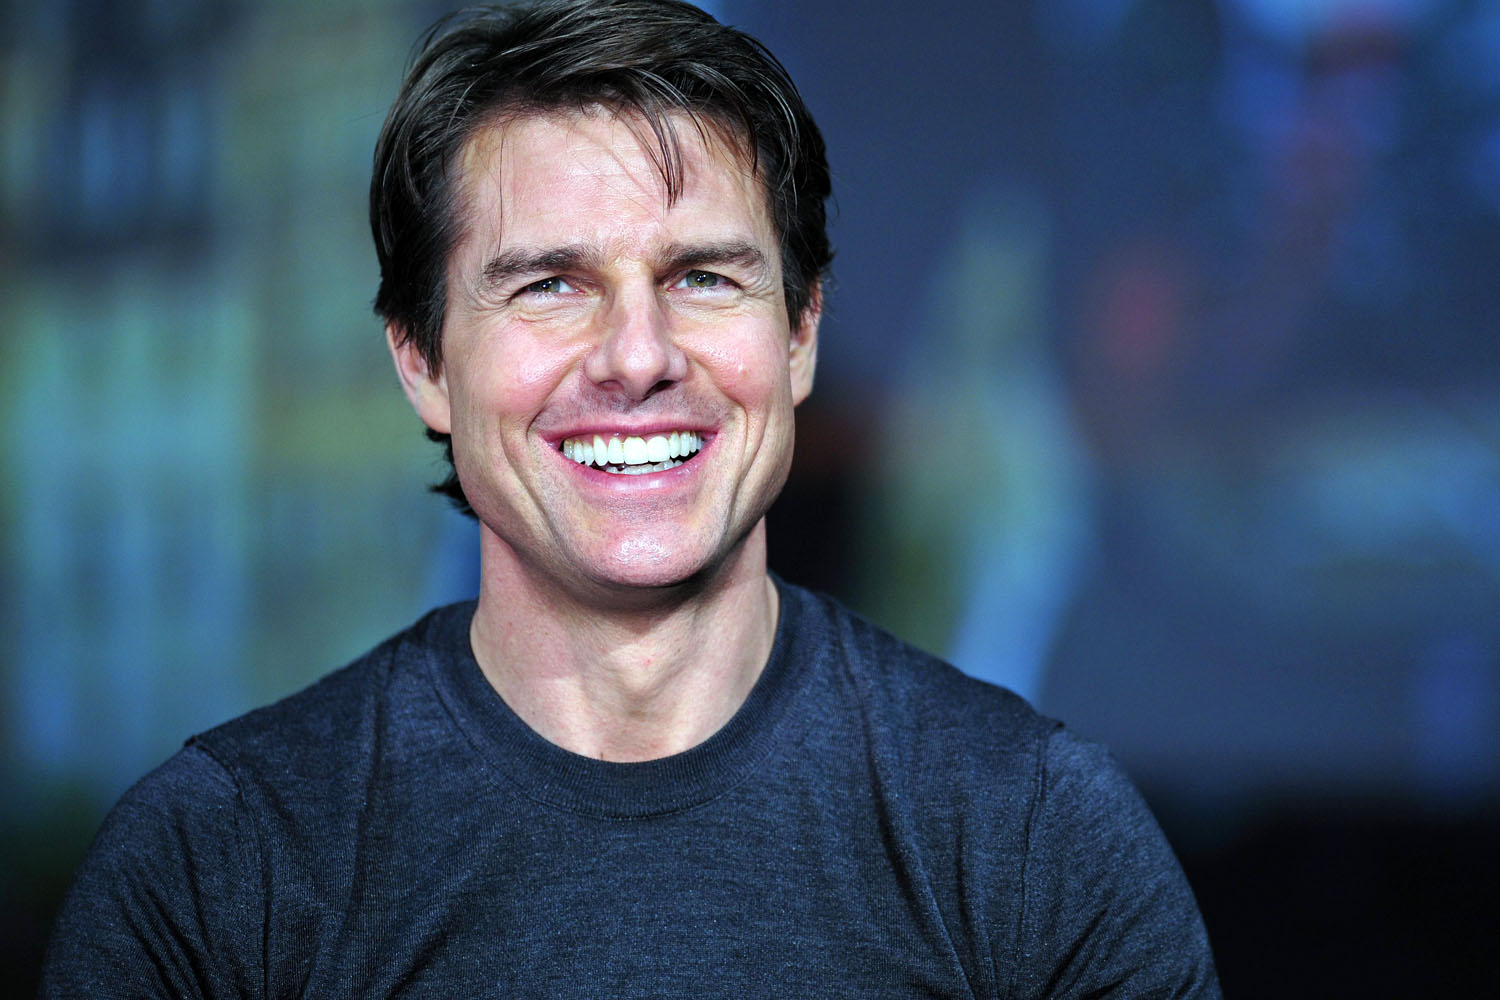 Tom Cruise casual mens hairstyles 2018